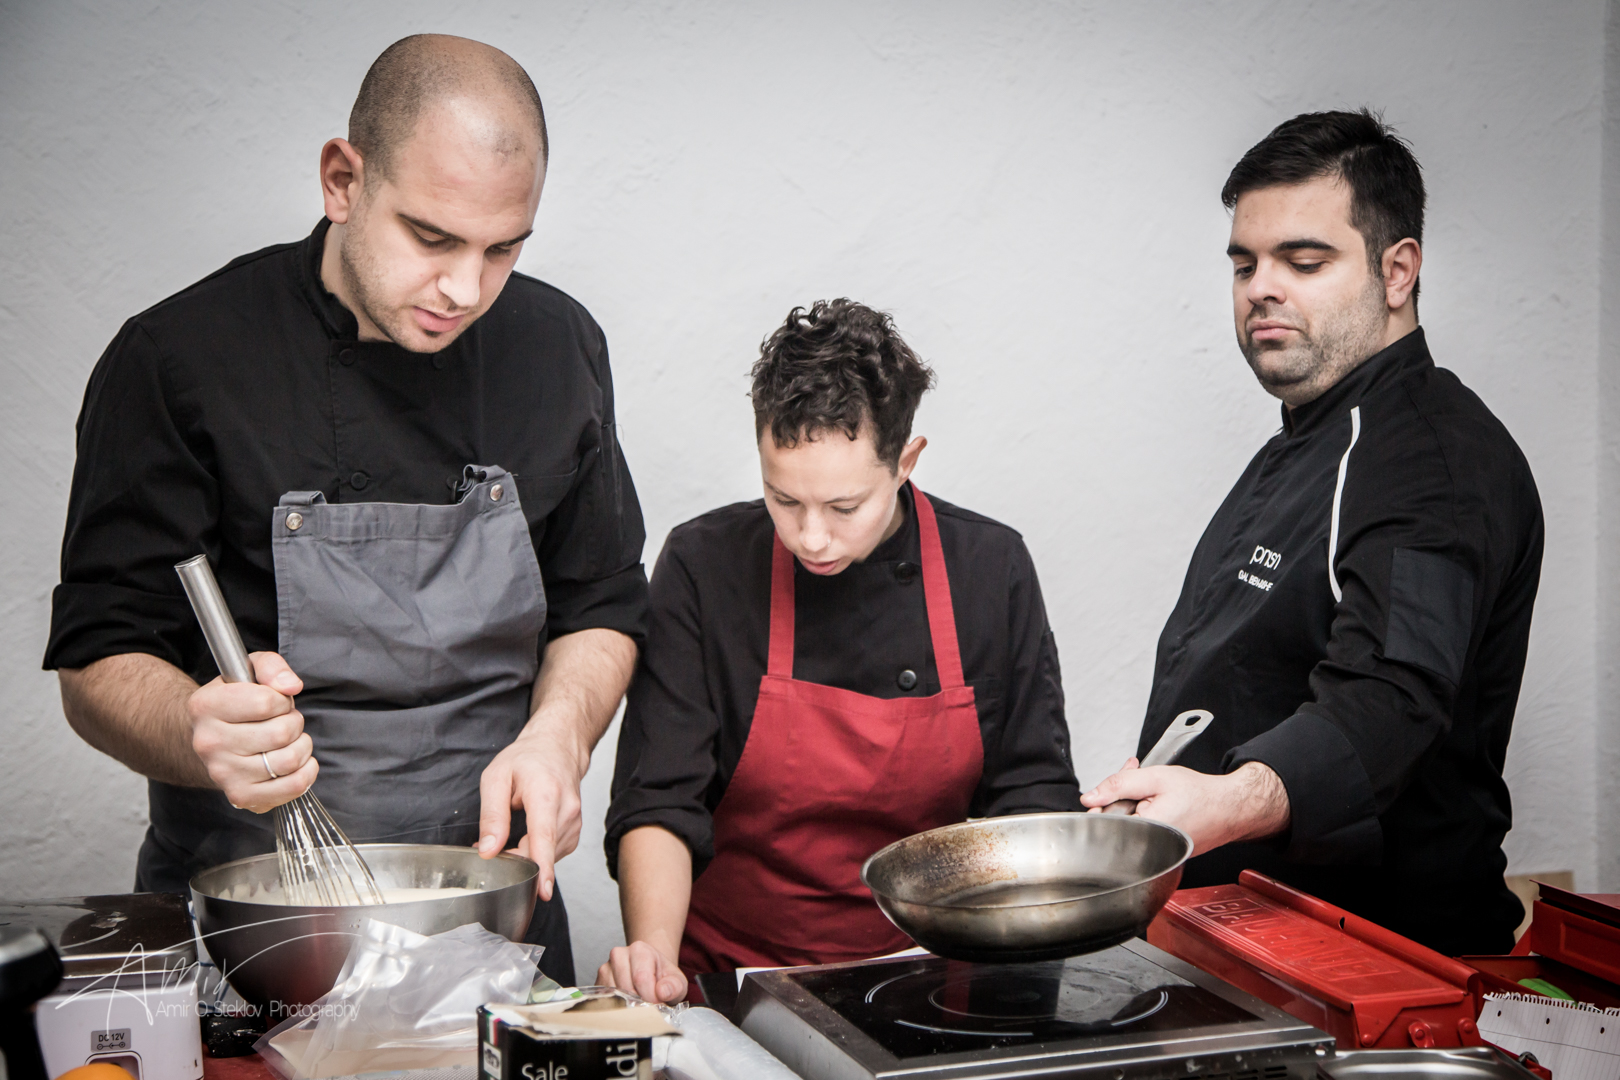 Chef Gal Ben Moshe And The Team